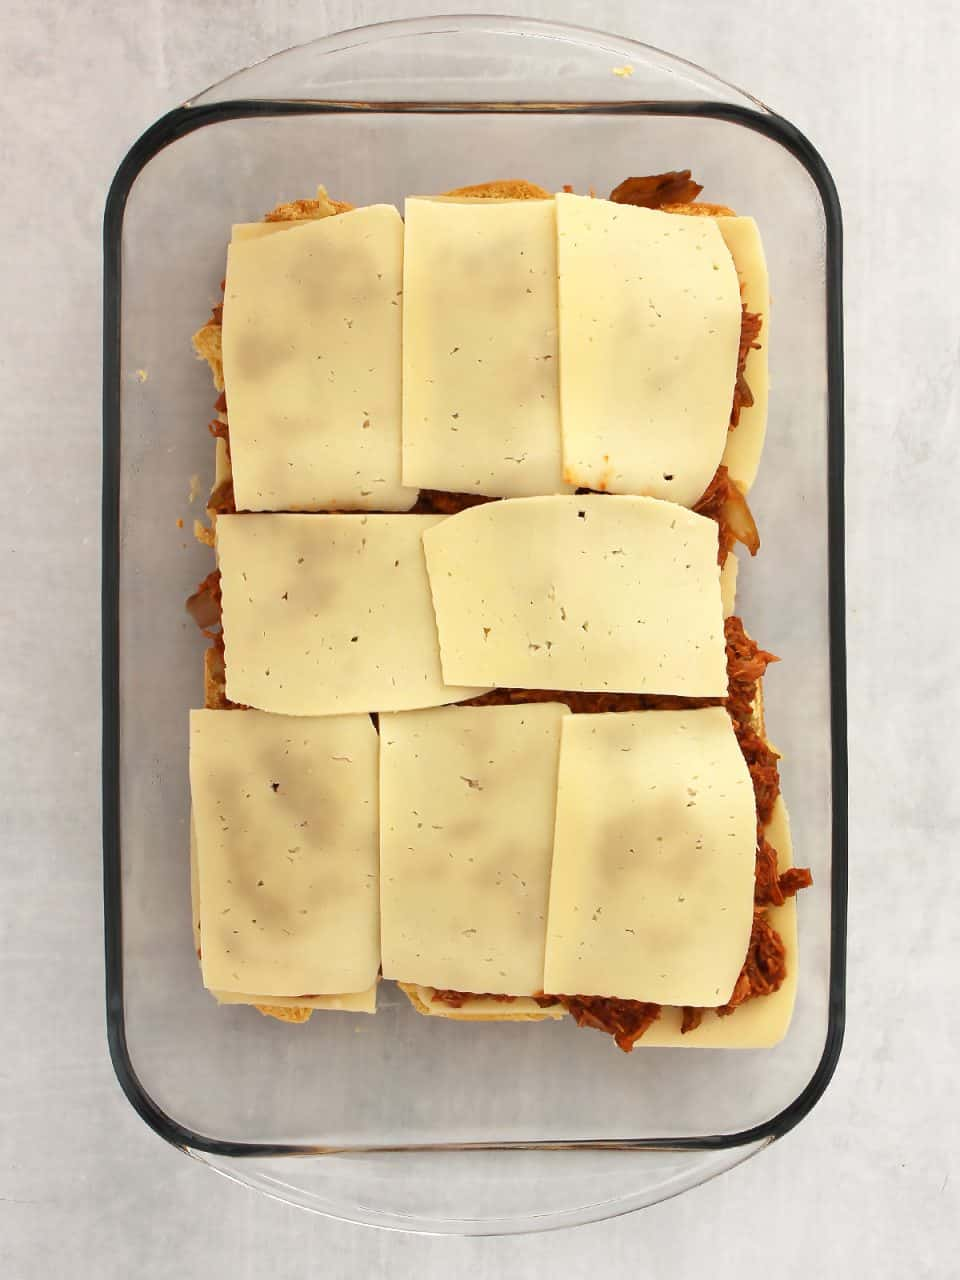 Cheese slices placed on top of the pulled pork.